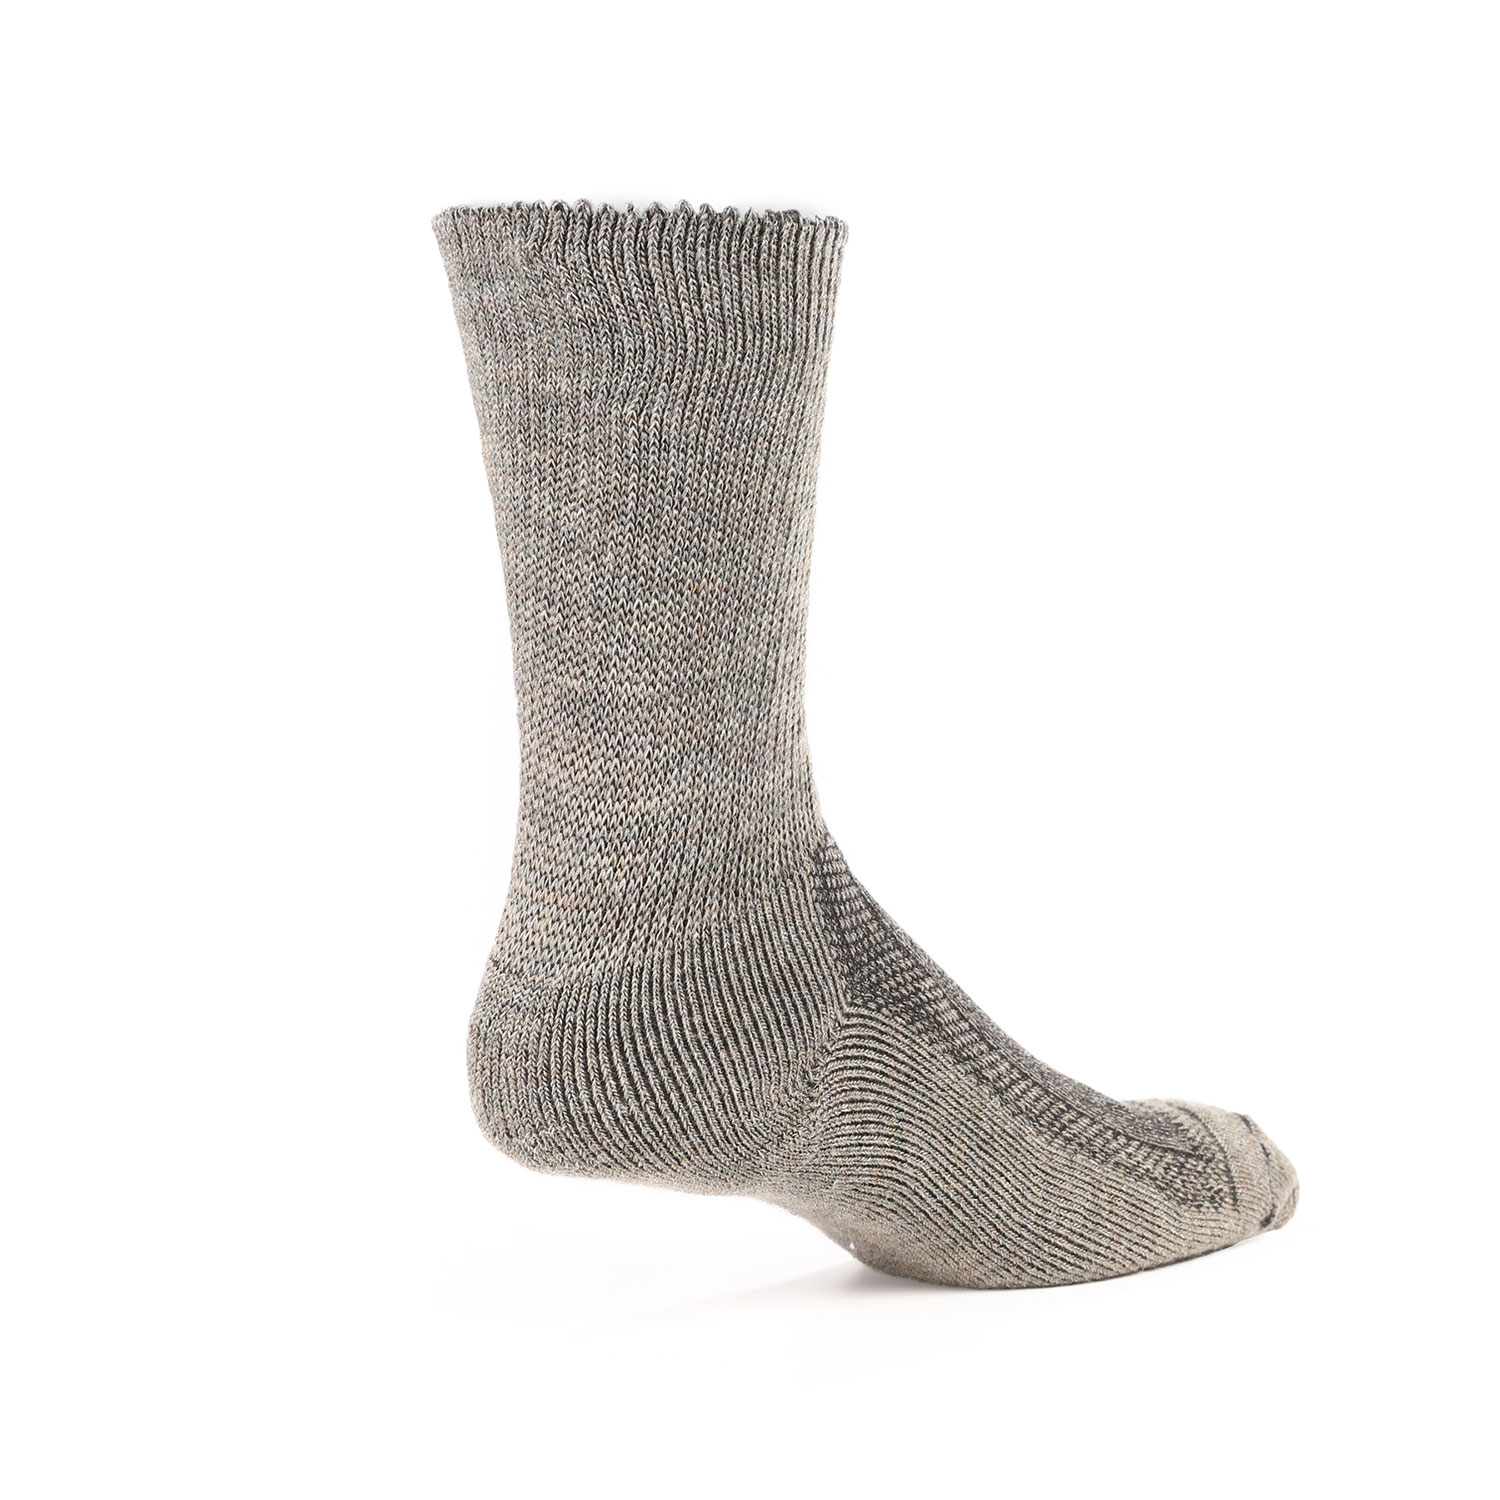 DuraCare Diabetic Wool Crew Sock (2 Pack)